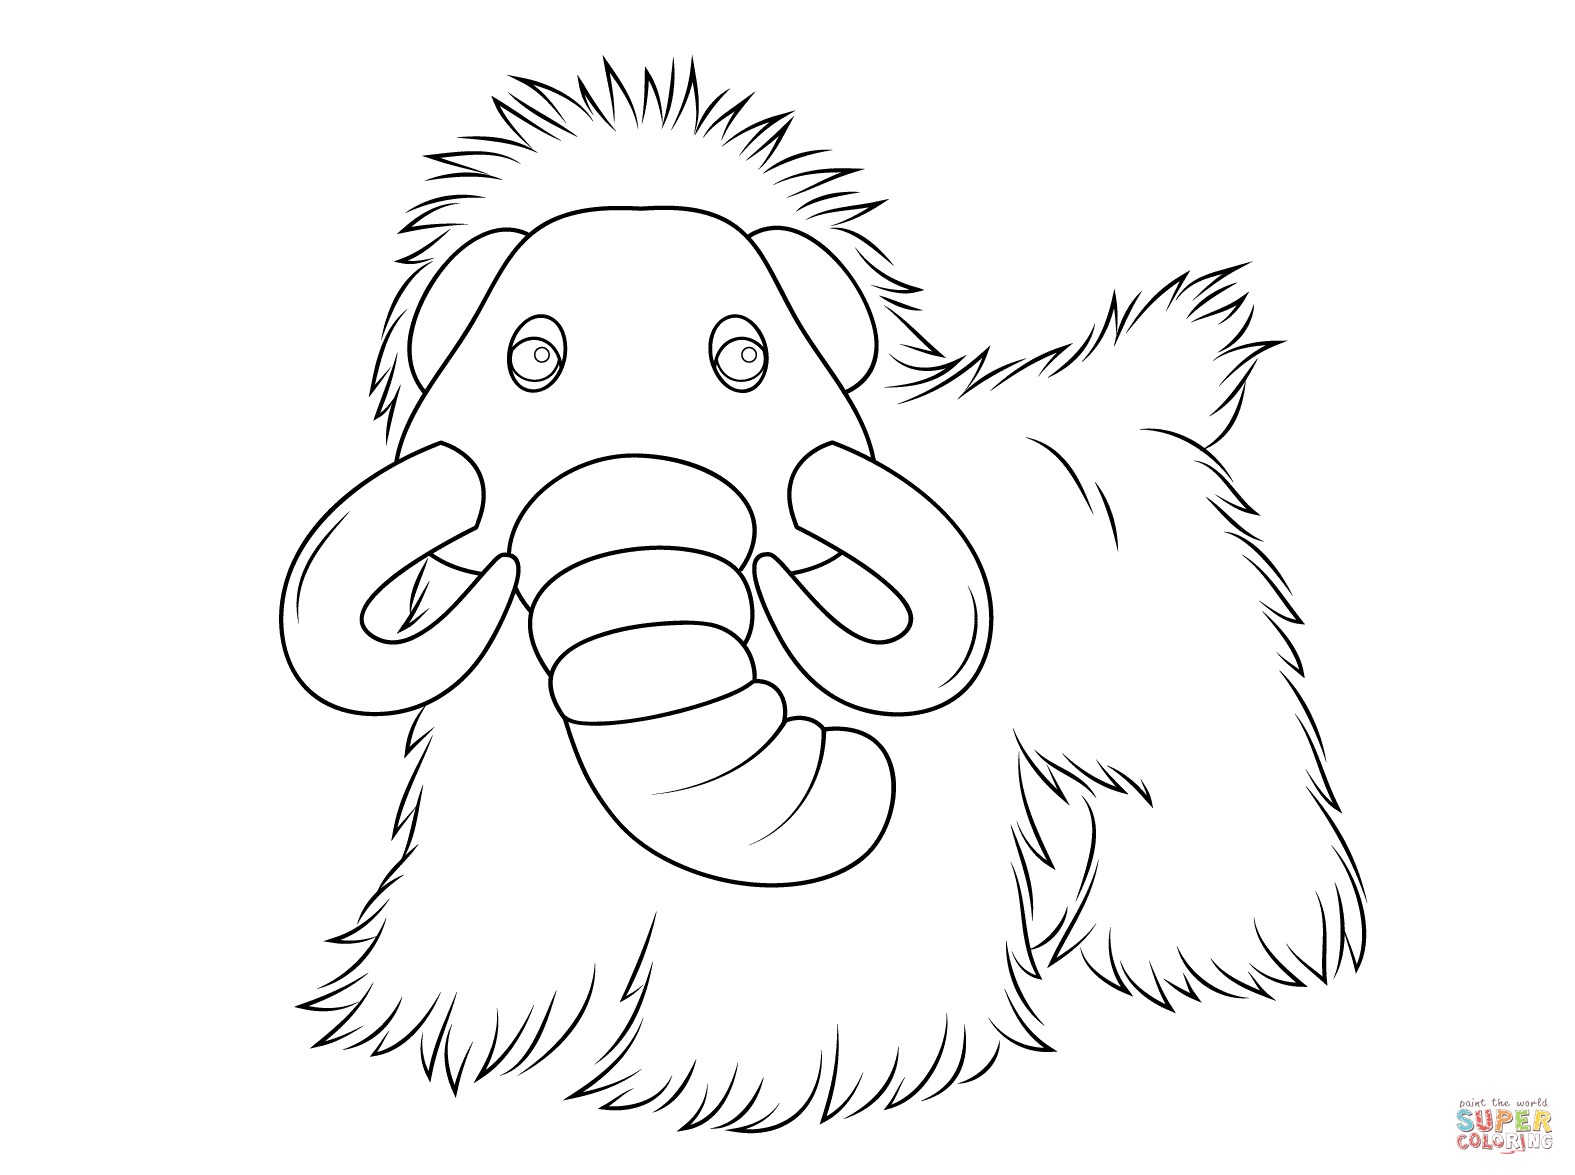 1575x1175 Webkinz Mammoth Coloring Page Free Printable Coloring Pages